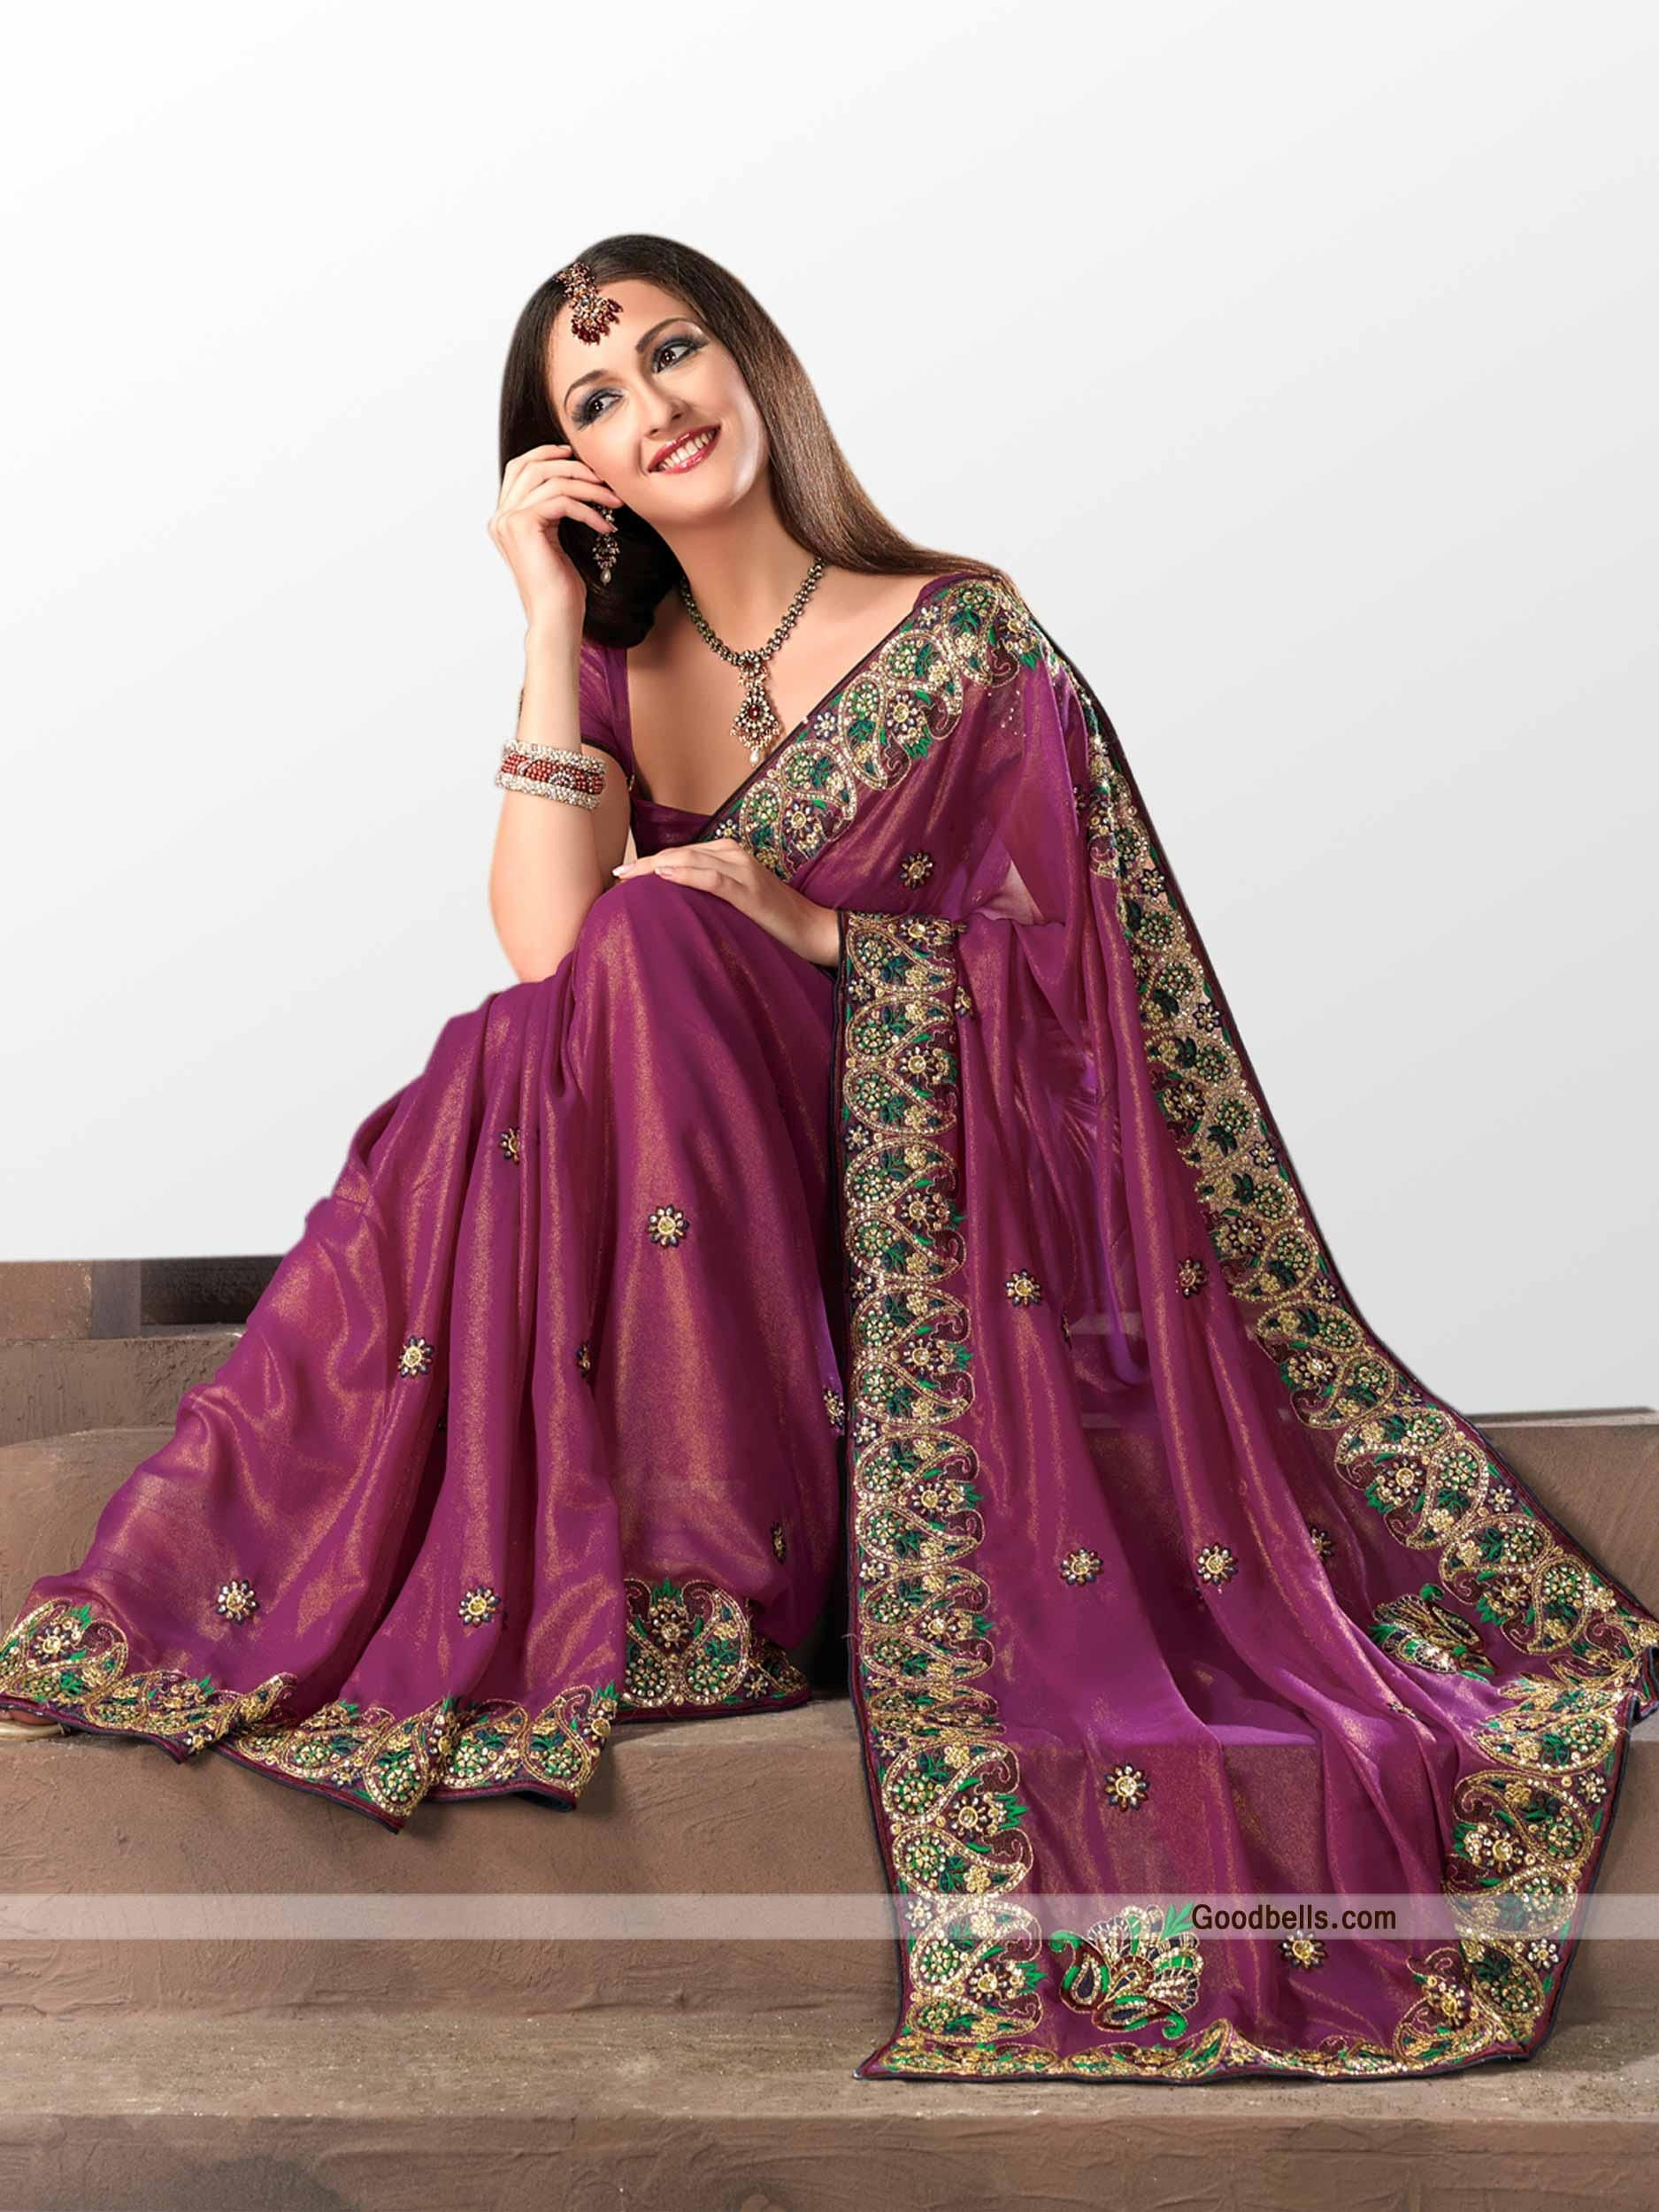 Get a pleasing look wearing this crushed saree. Contrasting black work on light base is enhancing its beauty. Designer border makes its party wear. It will look good for kitty as well as semi-formal parties. Buy this new saree from Goodbells.com: http://goodbells.com/saree/beautiful-purple-shade-saree-with-black-work.html?utm_source=pinterest_medium=link_campaign=pin10julyR10P220